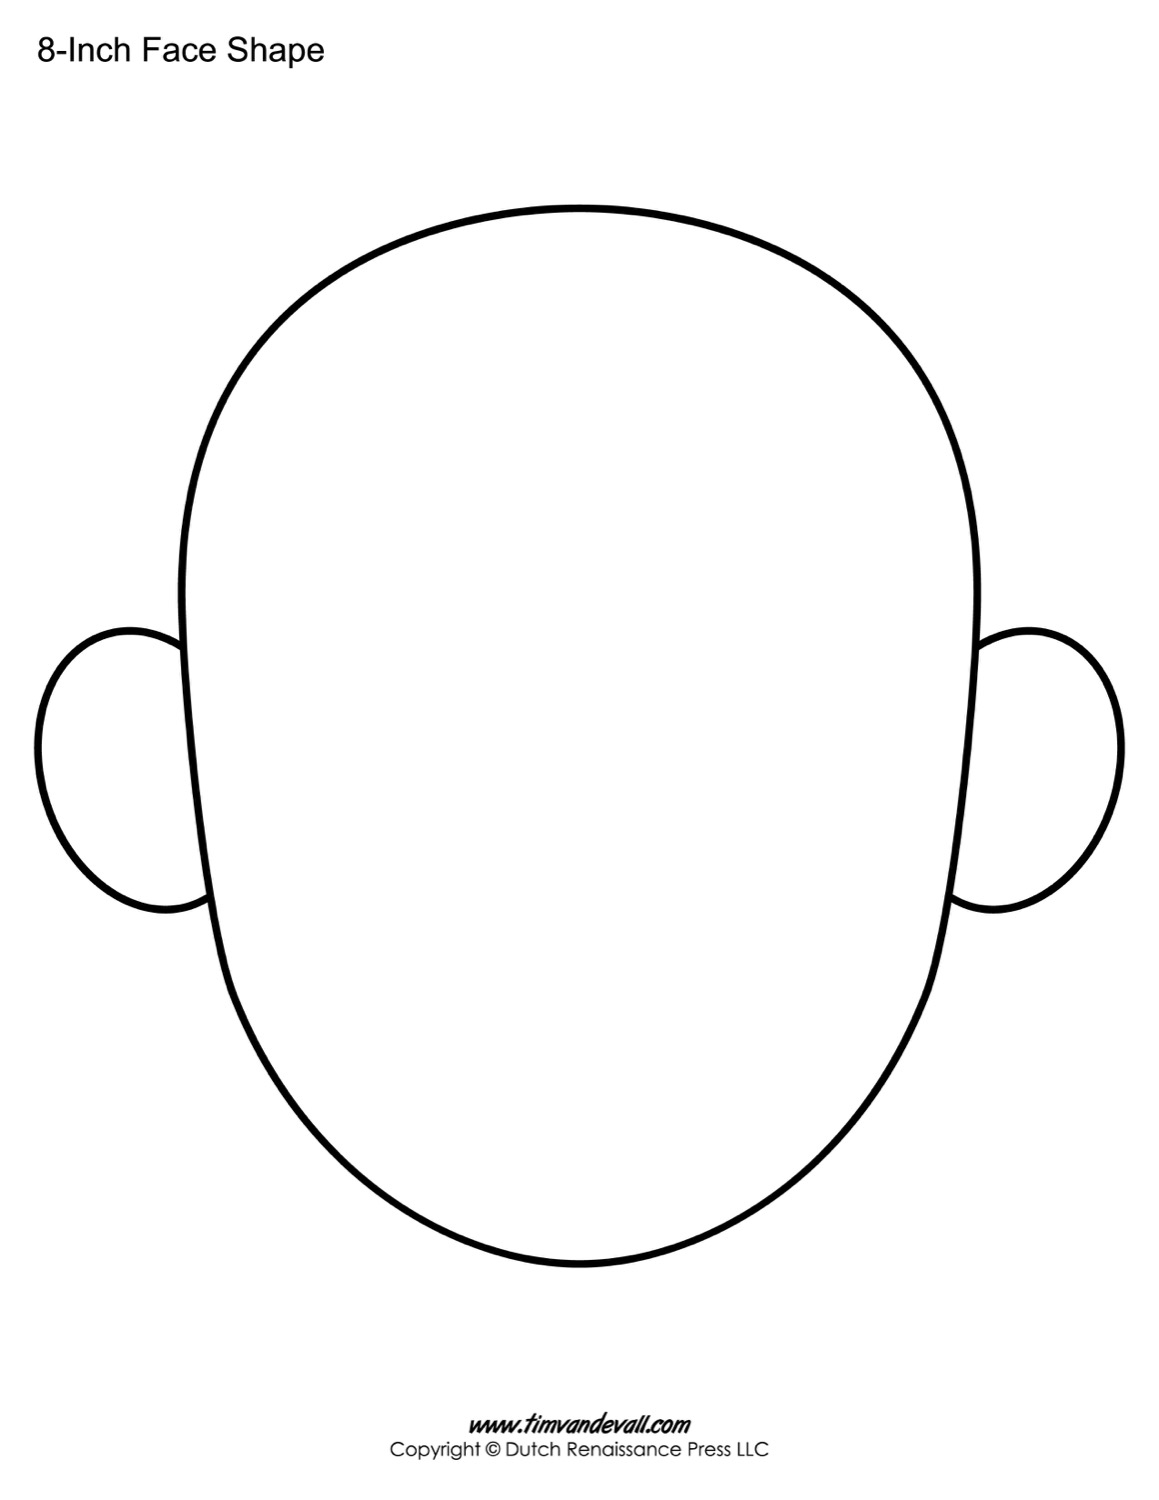 Parts Of Face Worksheet For Preschool